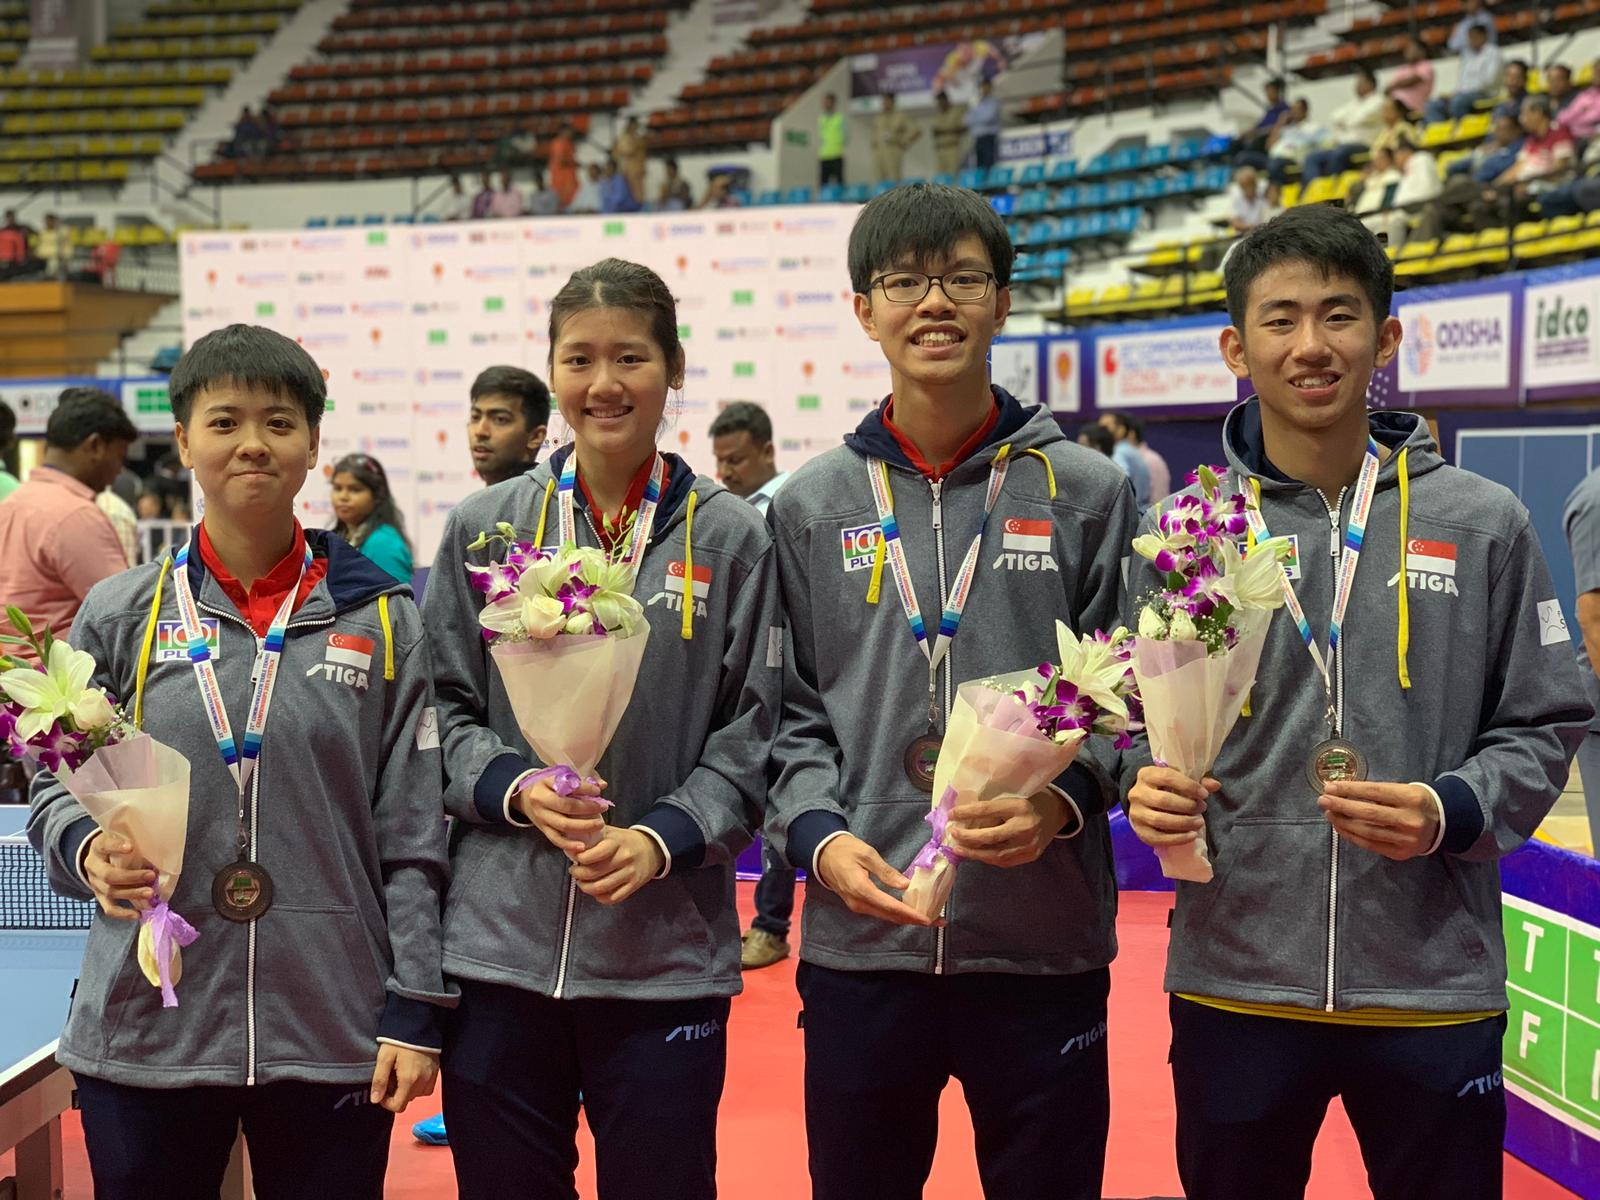 1 silver and 5 bronzes for Singapore Paddlers at the 21st Commonwealth Table Tennis Championships, Odisha, India (17 to 22 July 2019)